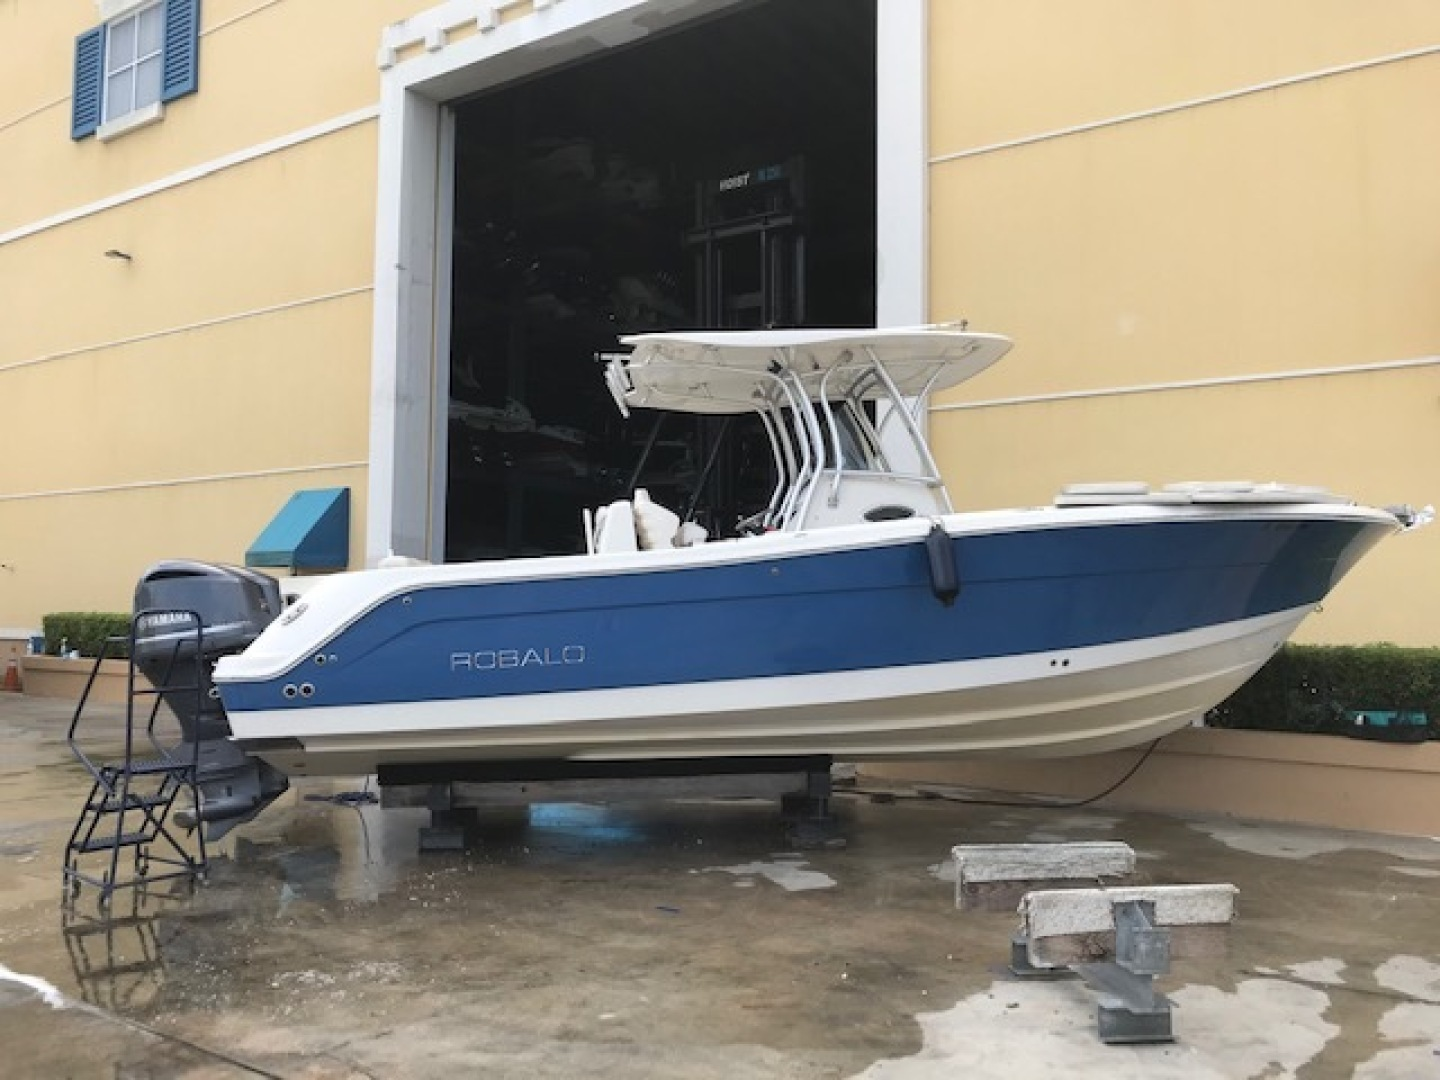 Robalo-R300 Center Console 2012-No Name Pompano Beach-Florida-United States-Profile-1537378 | Thumbnail